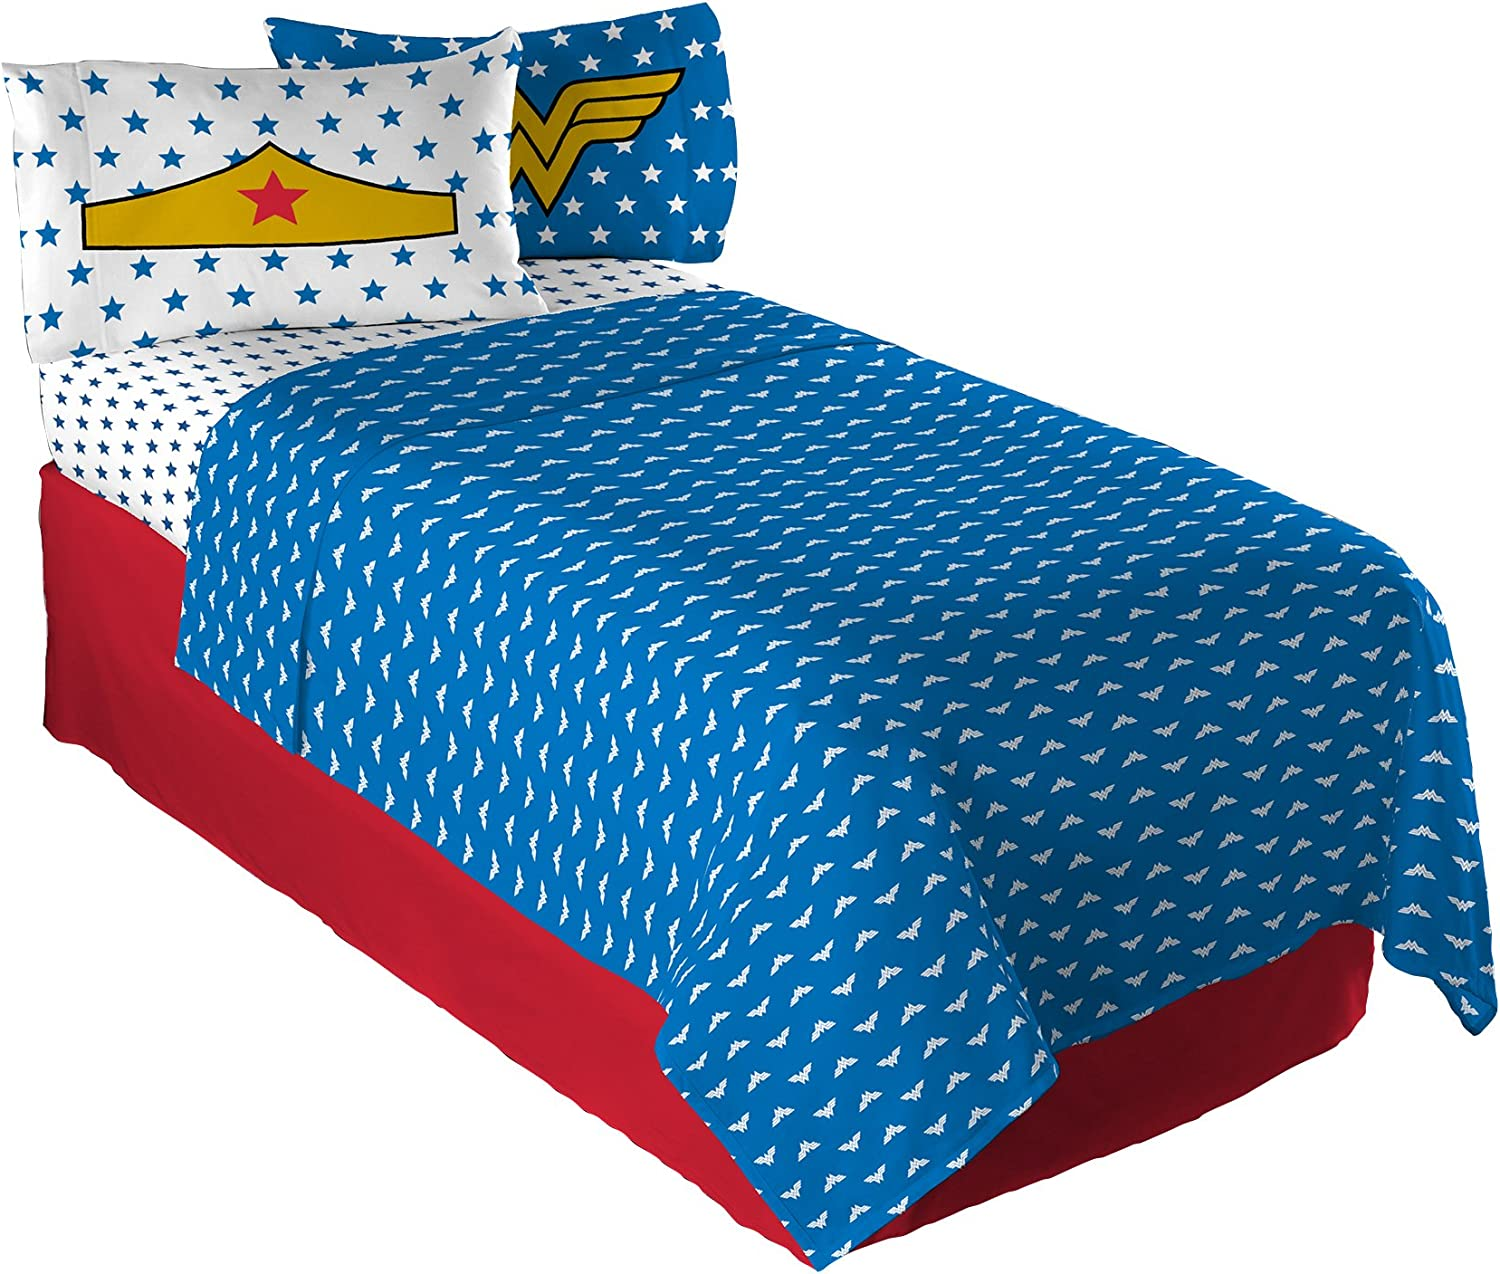 Warner Bros. Wonder Woman Full Sheet Set